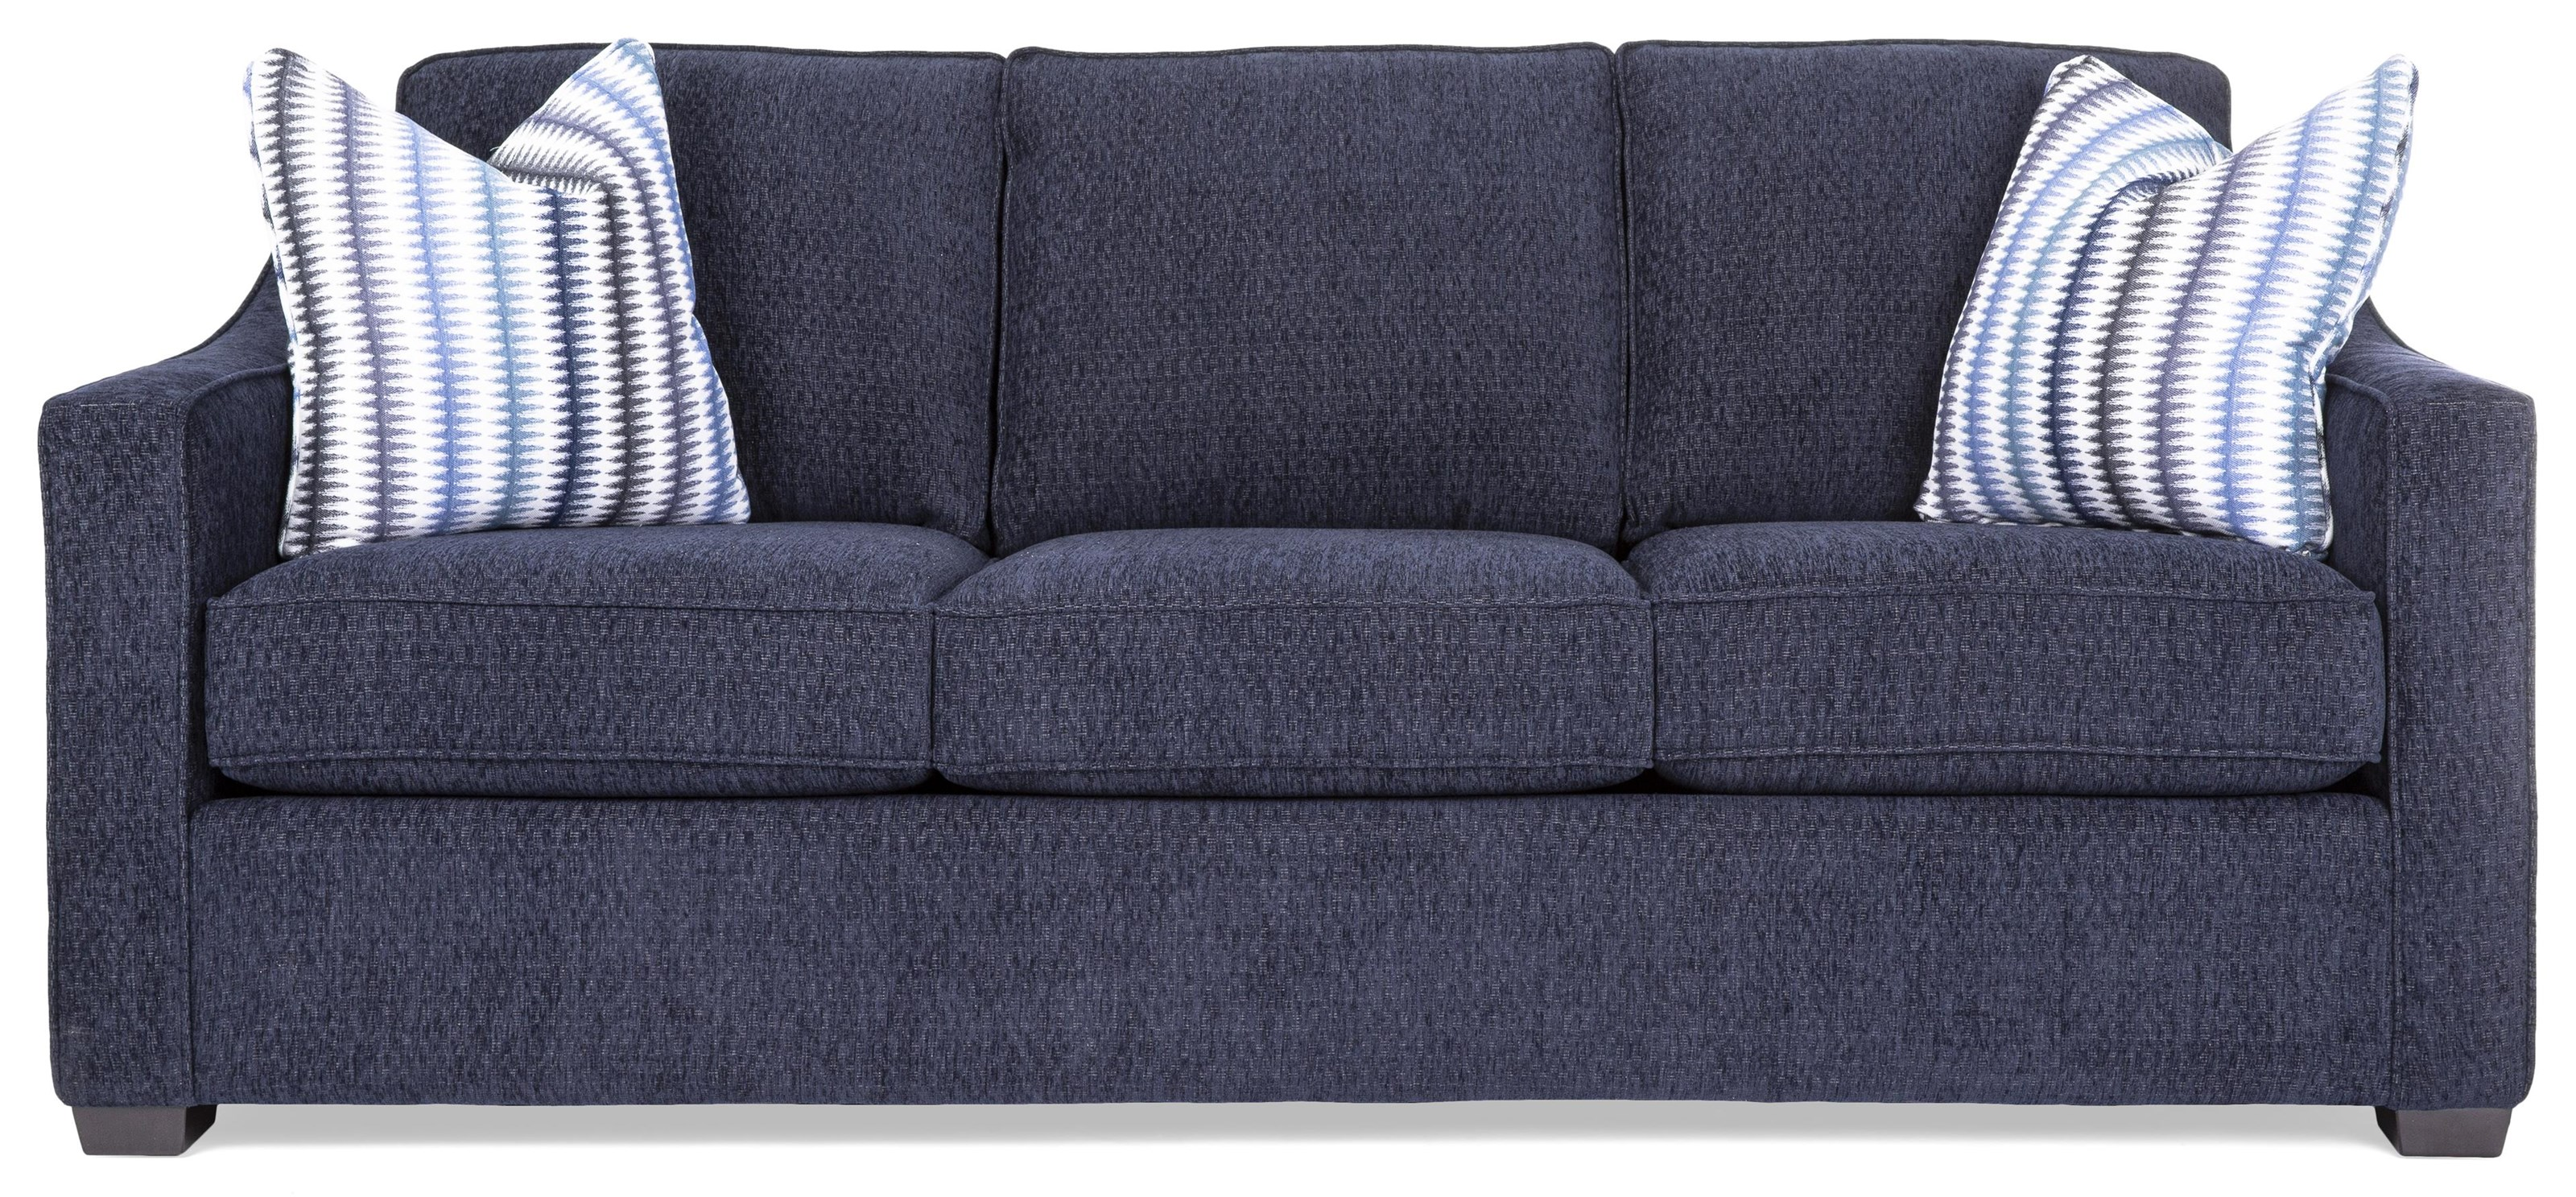 Mena Sofa by Taelor Designs at Bennett's Furniture and Mattresses